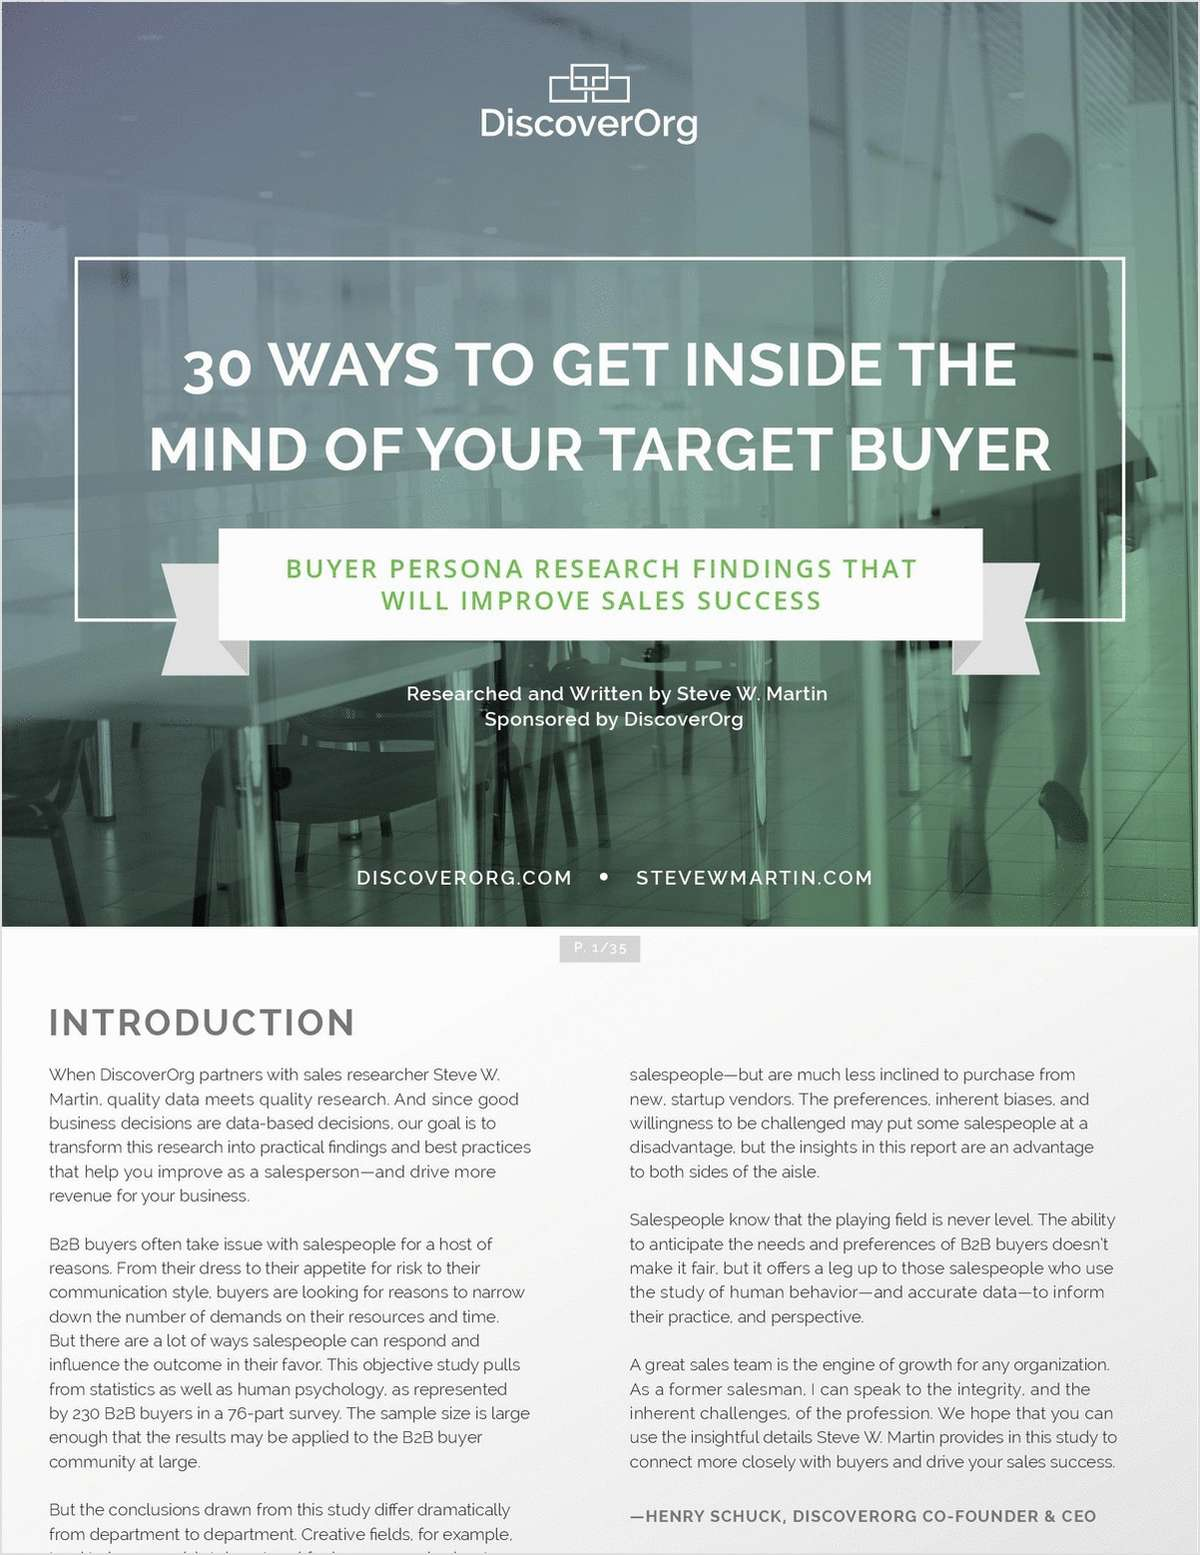 30 Ways to Get Inside the Mind of Your Target Buyer